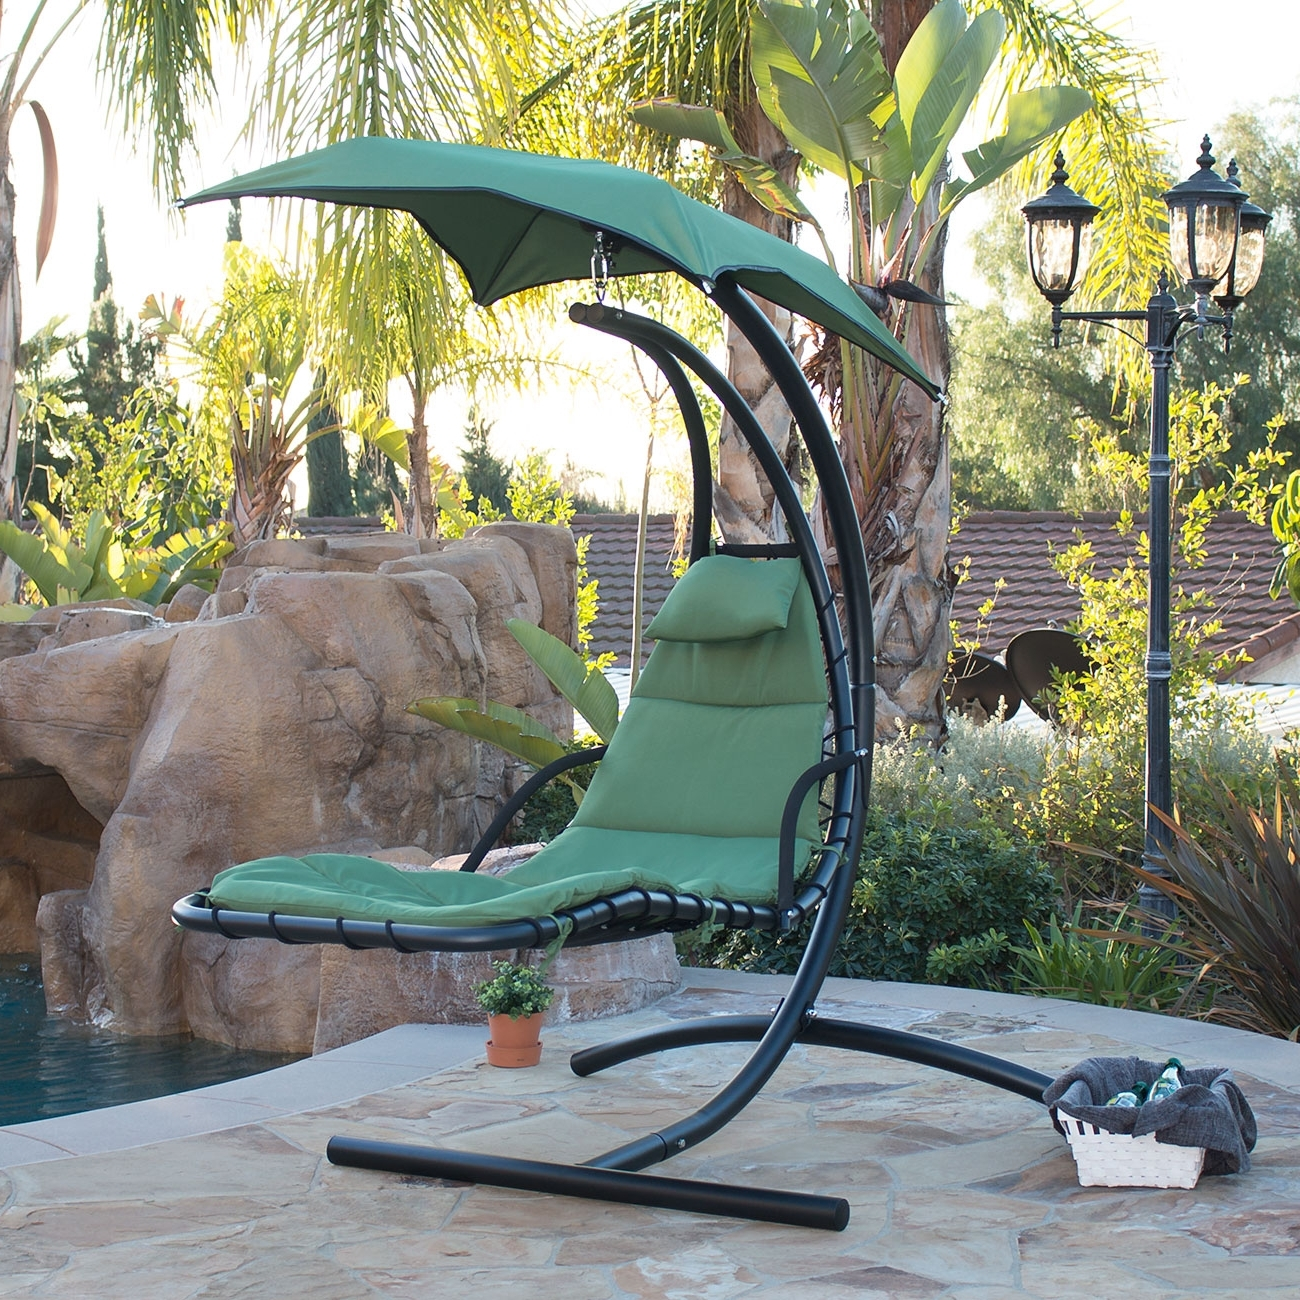 Preferred Hanging Chaise Lounge Chair Hammock Swing Canopy Glider Outdoor In Hanging Chaise Lounge Chairs (View 12 of 15)